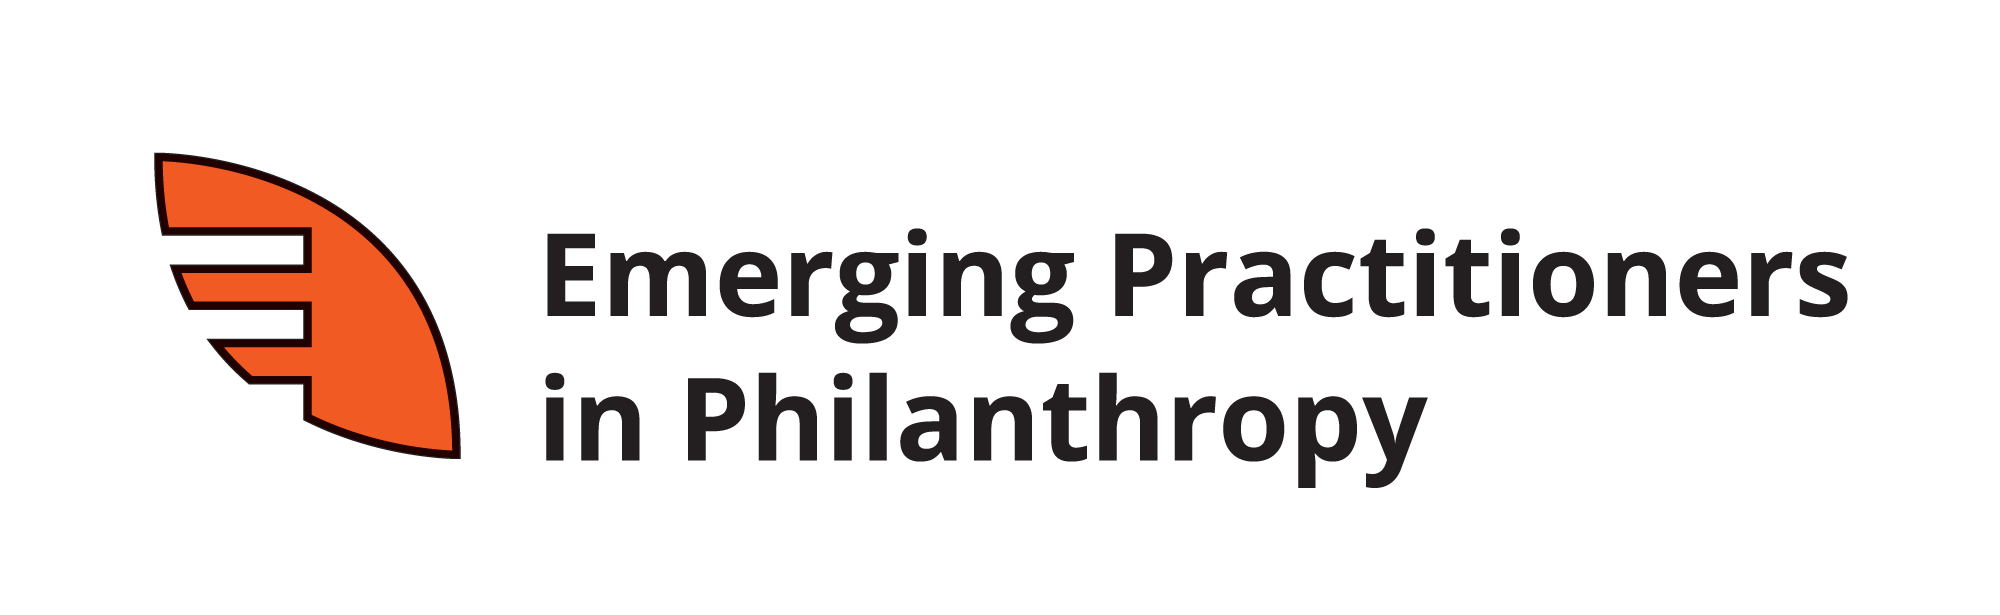 Image result for emerging practitioners in philanthropy